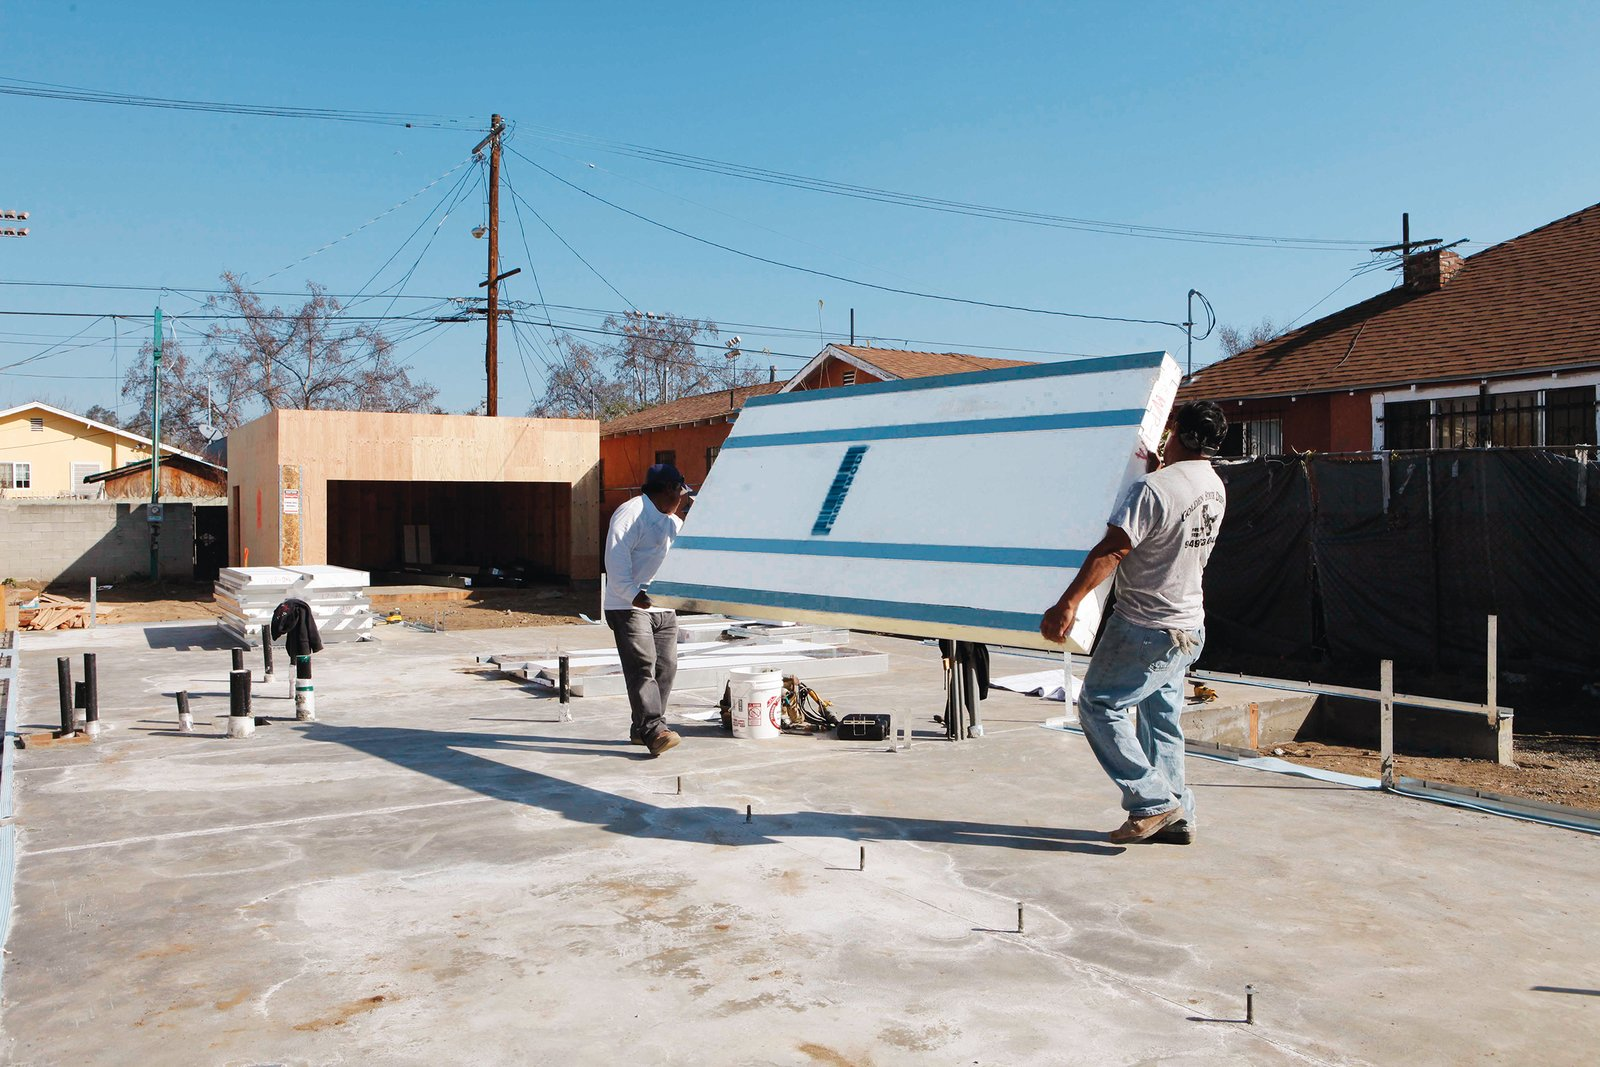 """""""There's no drilling or chopping,"""" says Erla Dögg Ingjaldsdóttir, cofounder of Minarc. """"It's   a very elegant way to build."""" Photos by Art Gray.  Photo 2 of 3 in An Innovative Net-Zero Prefab in Los Angeles"""